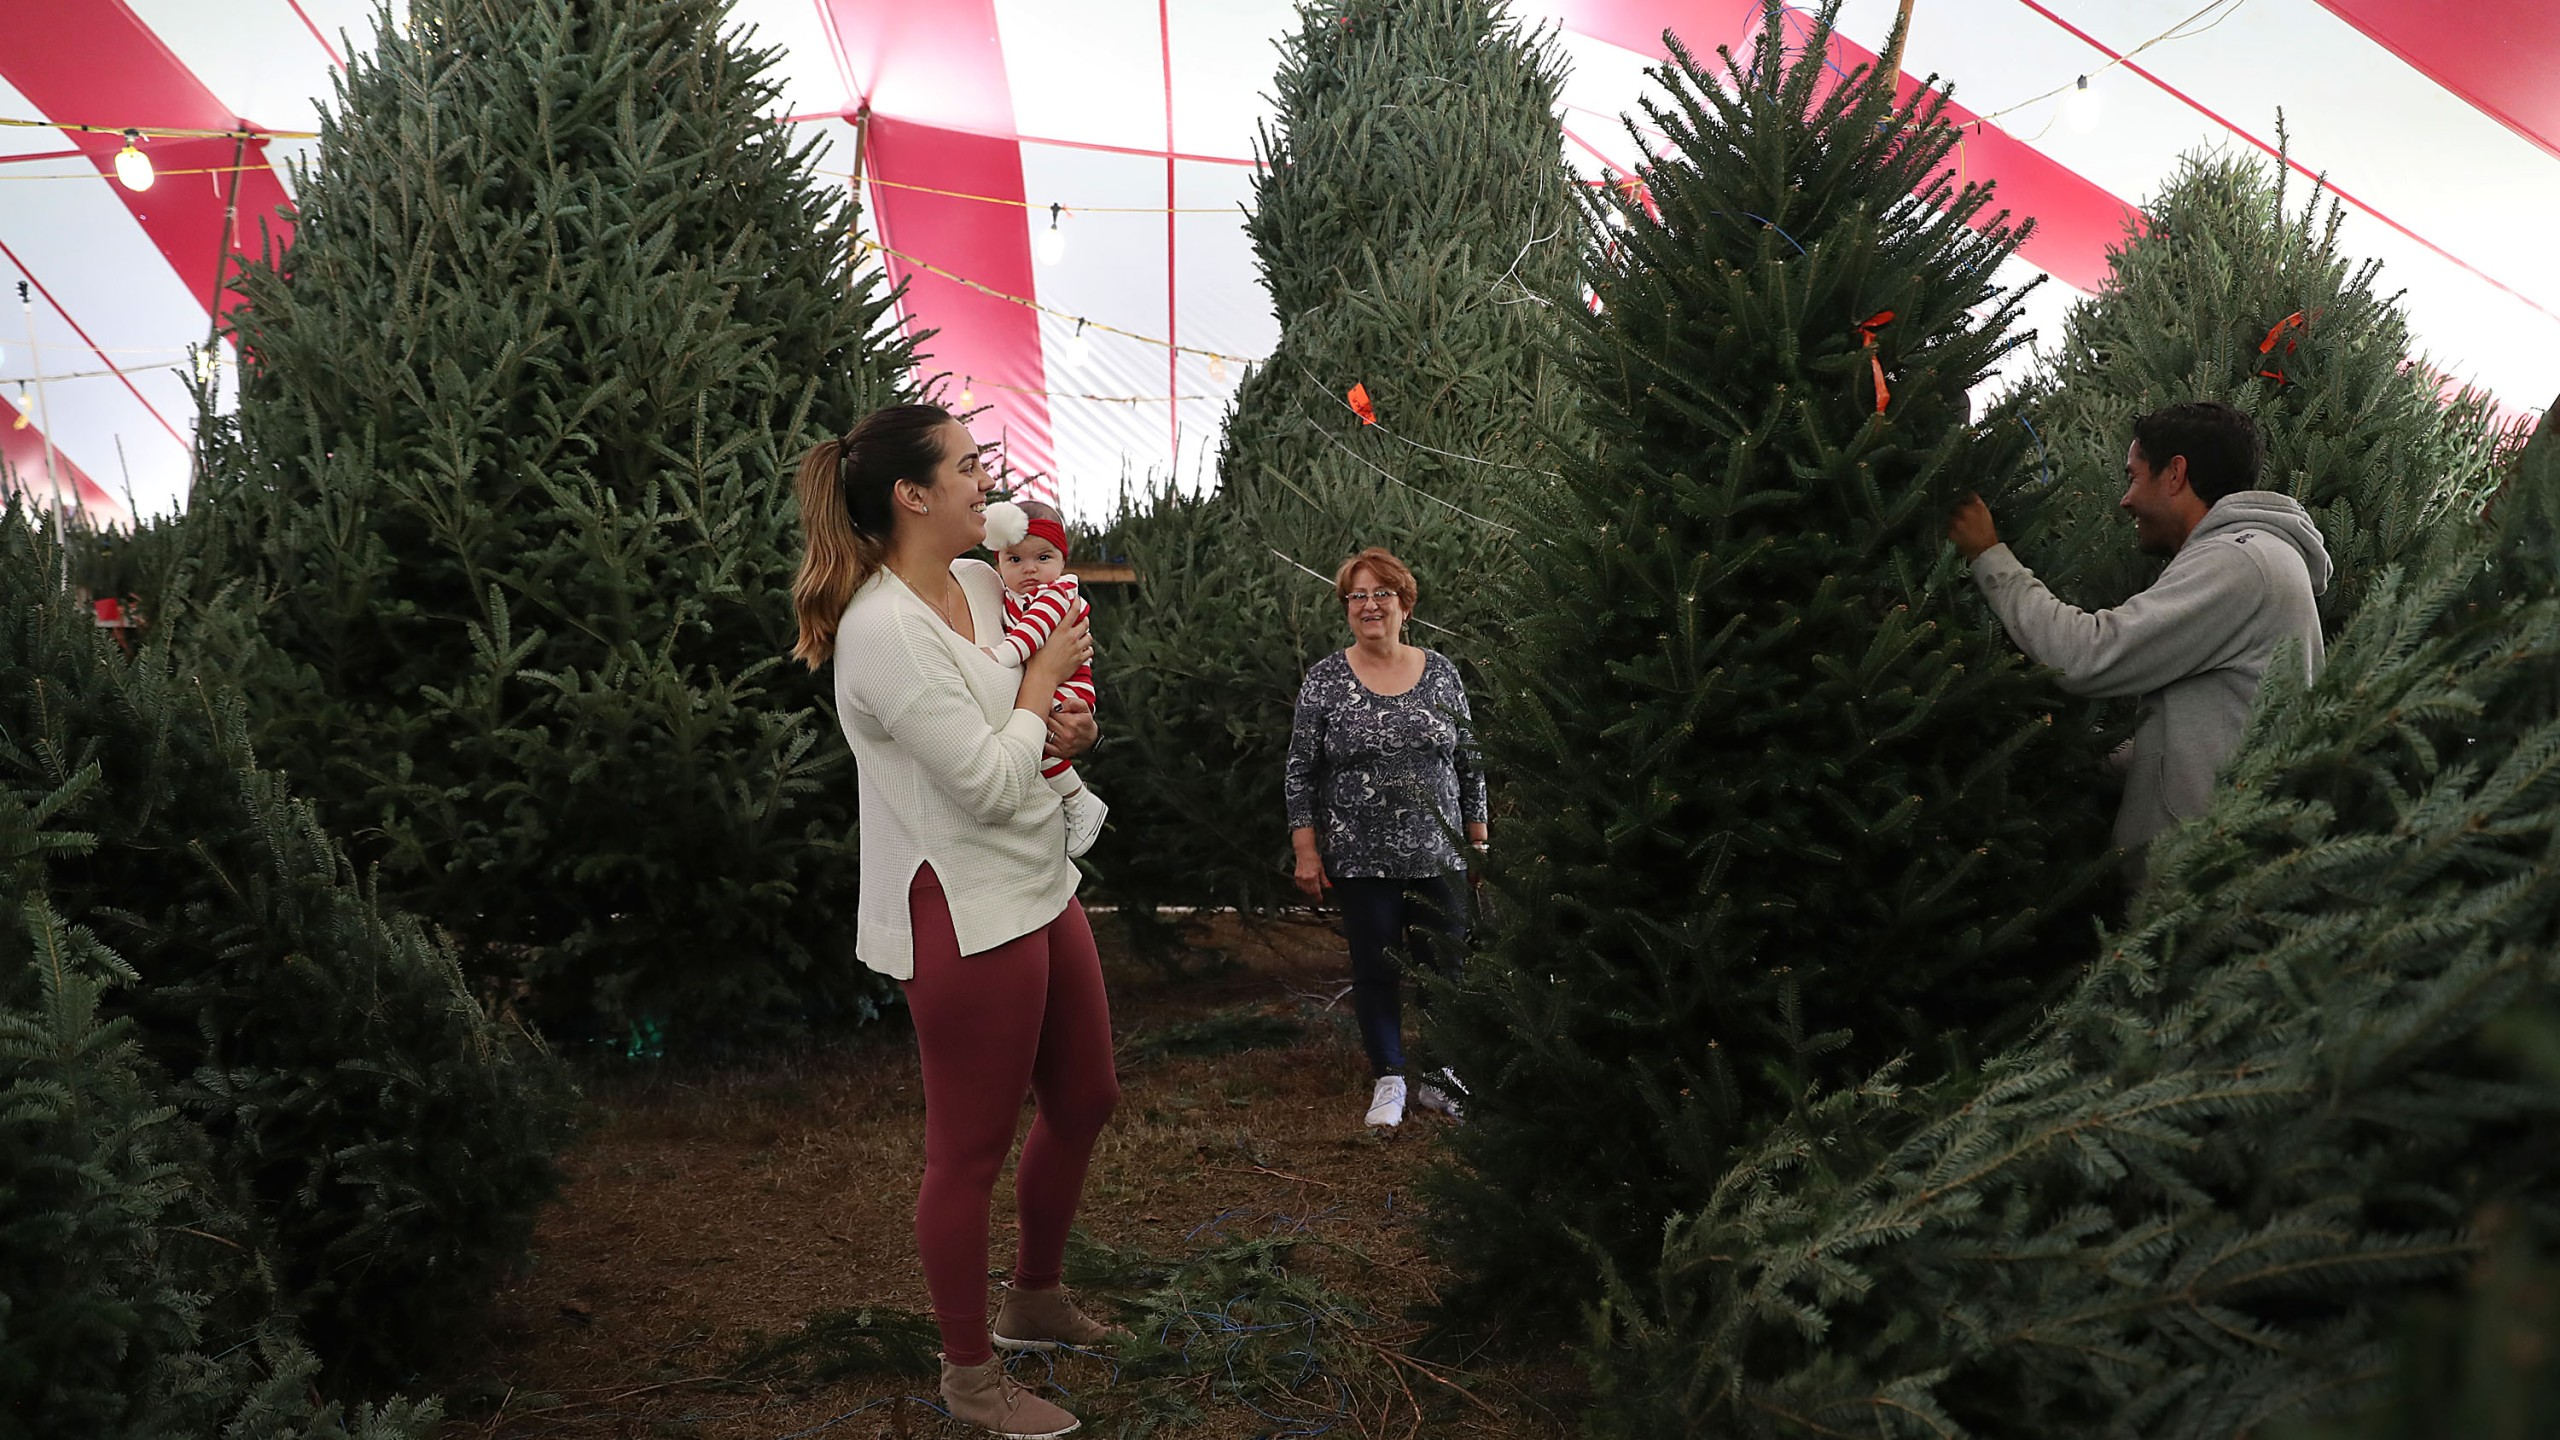 A woman holds her daughter as she shops for a Christmas tree on Nov. 29, 2018, in Miami, Florida. (Credit: Joe Raedle/Getty Images)